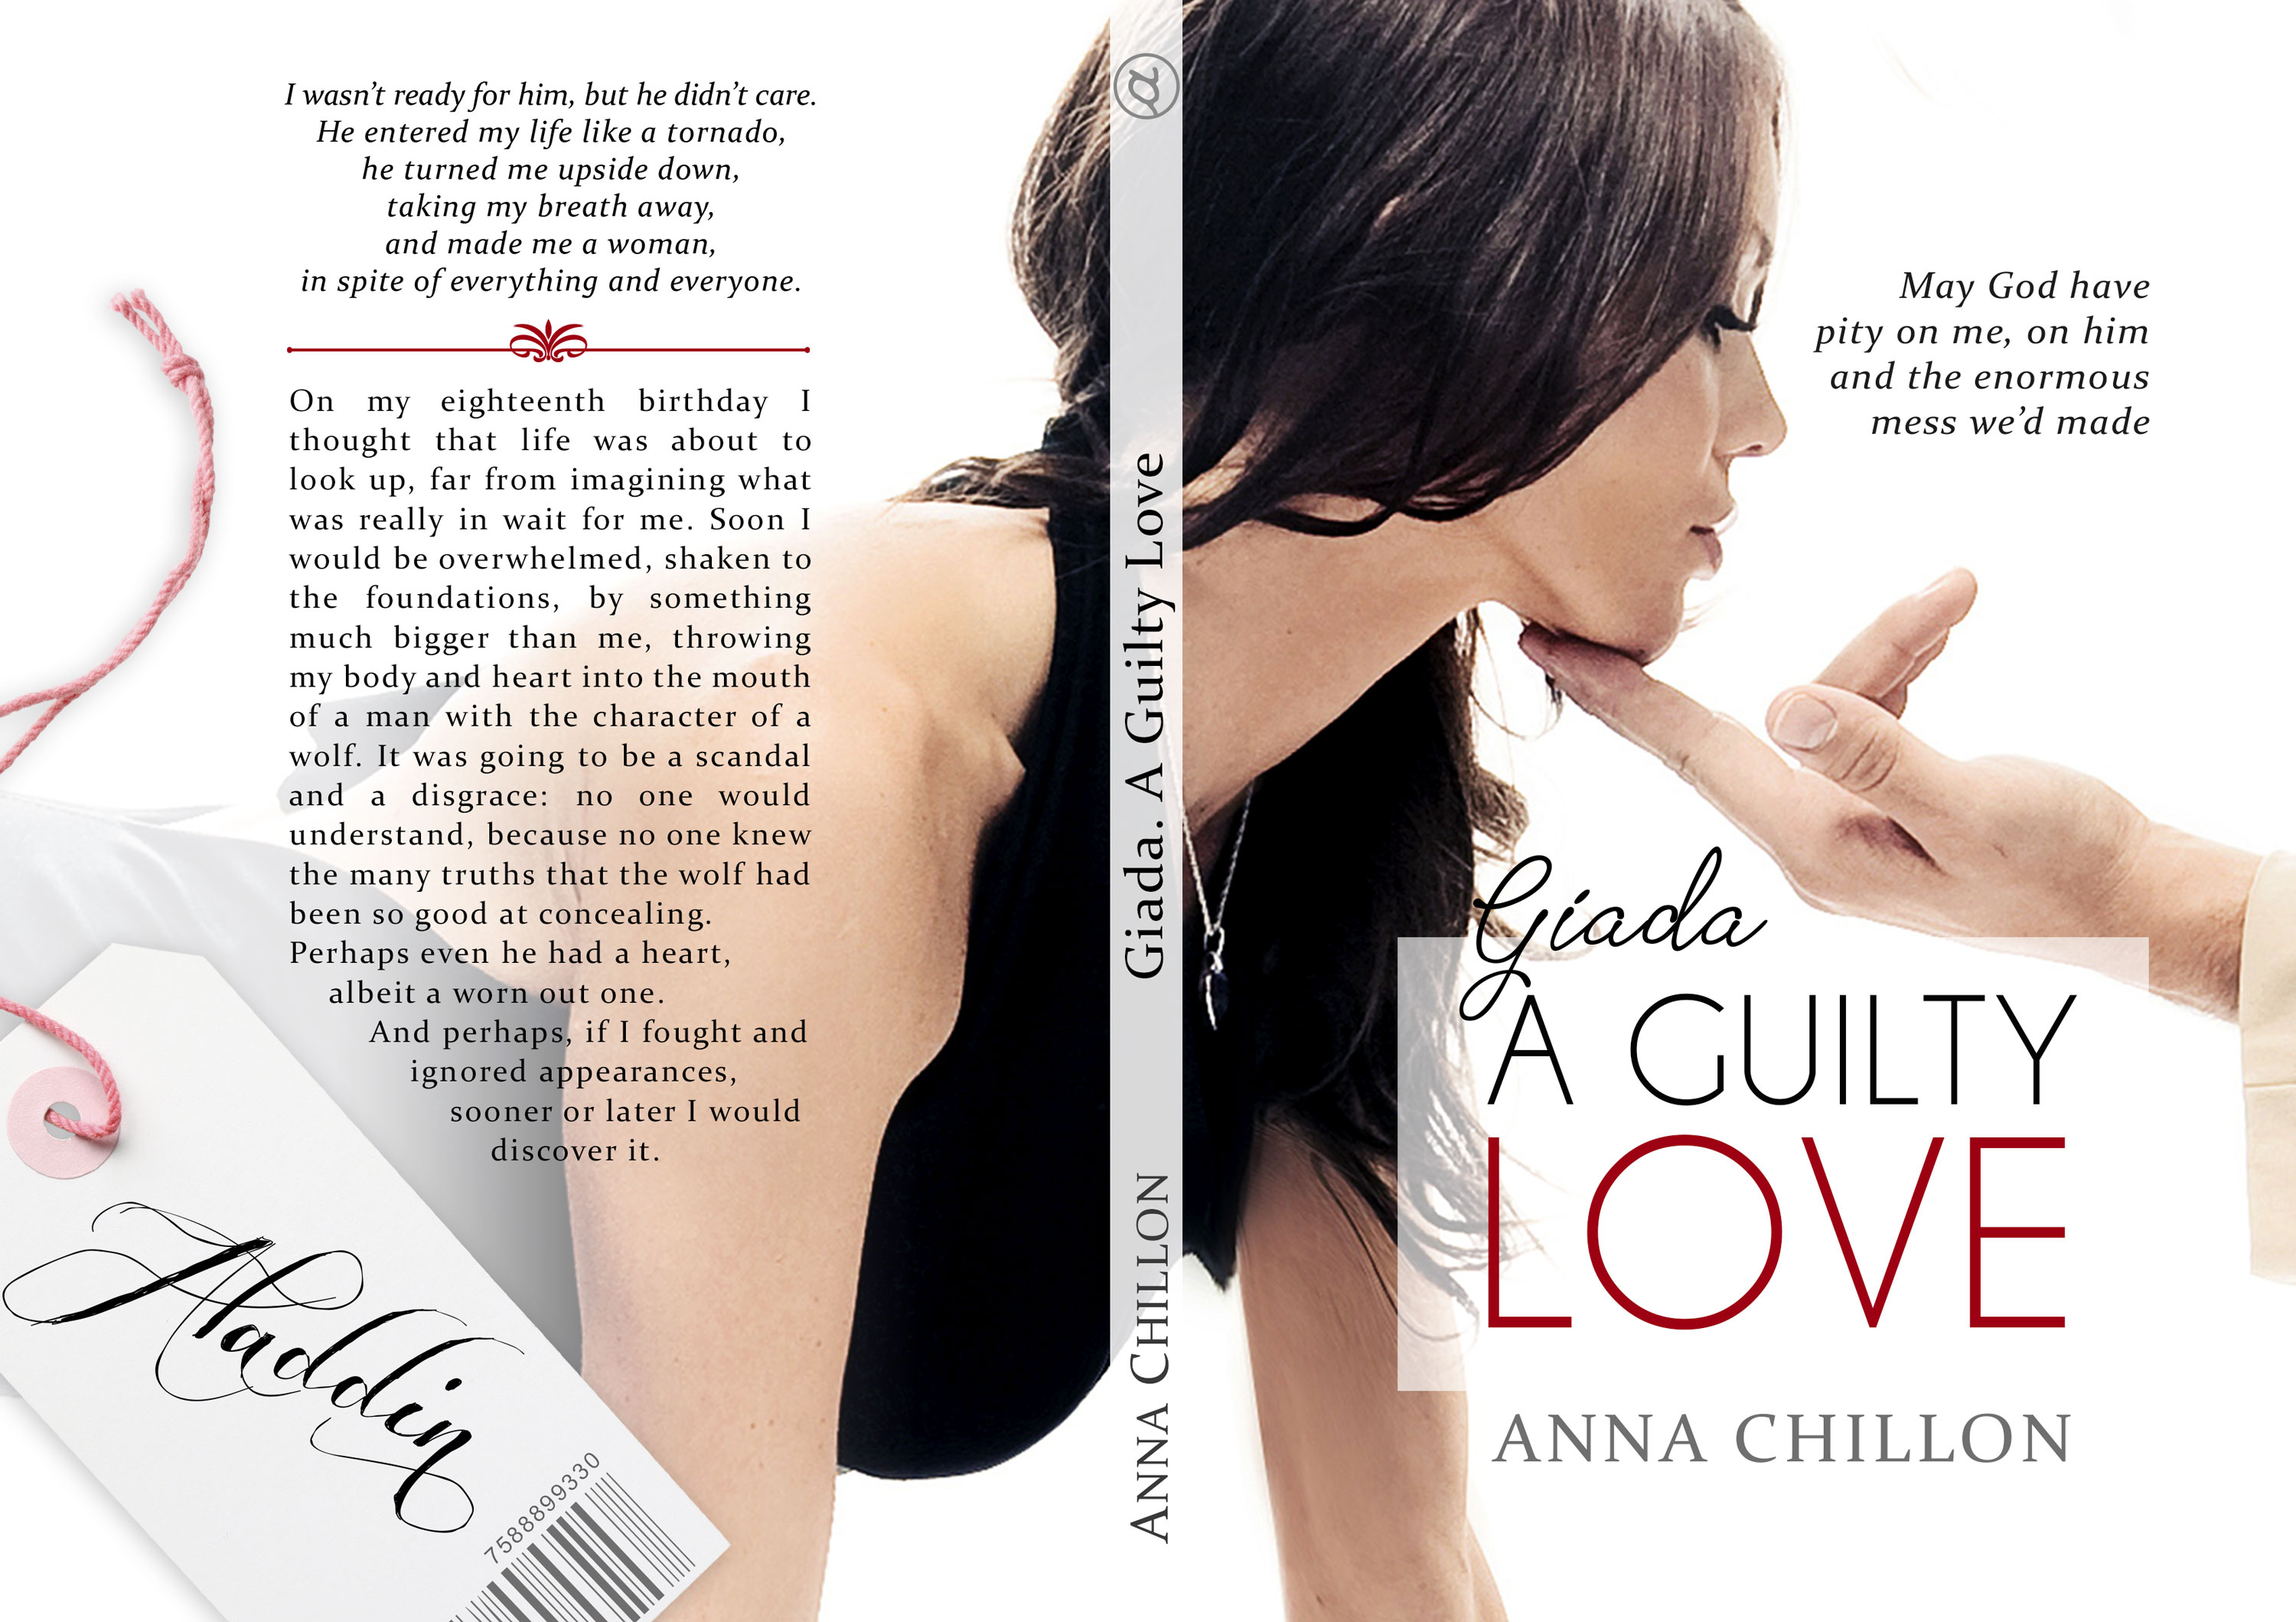 Giada. A Guilty Love